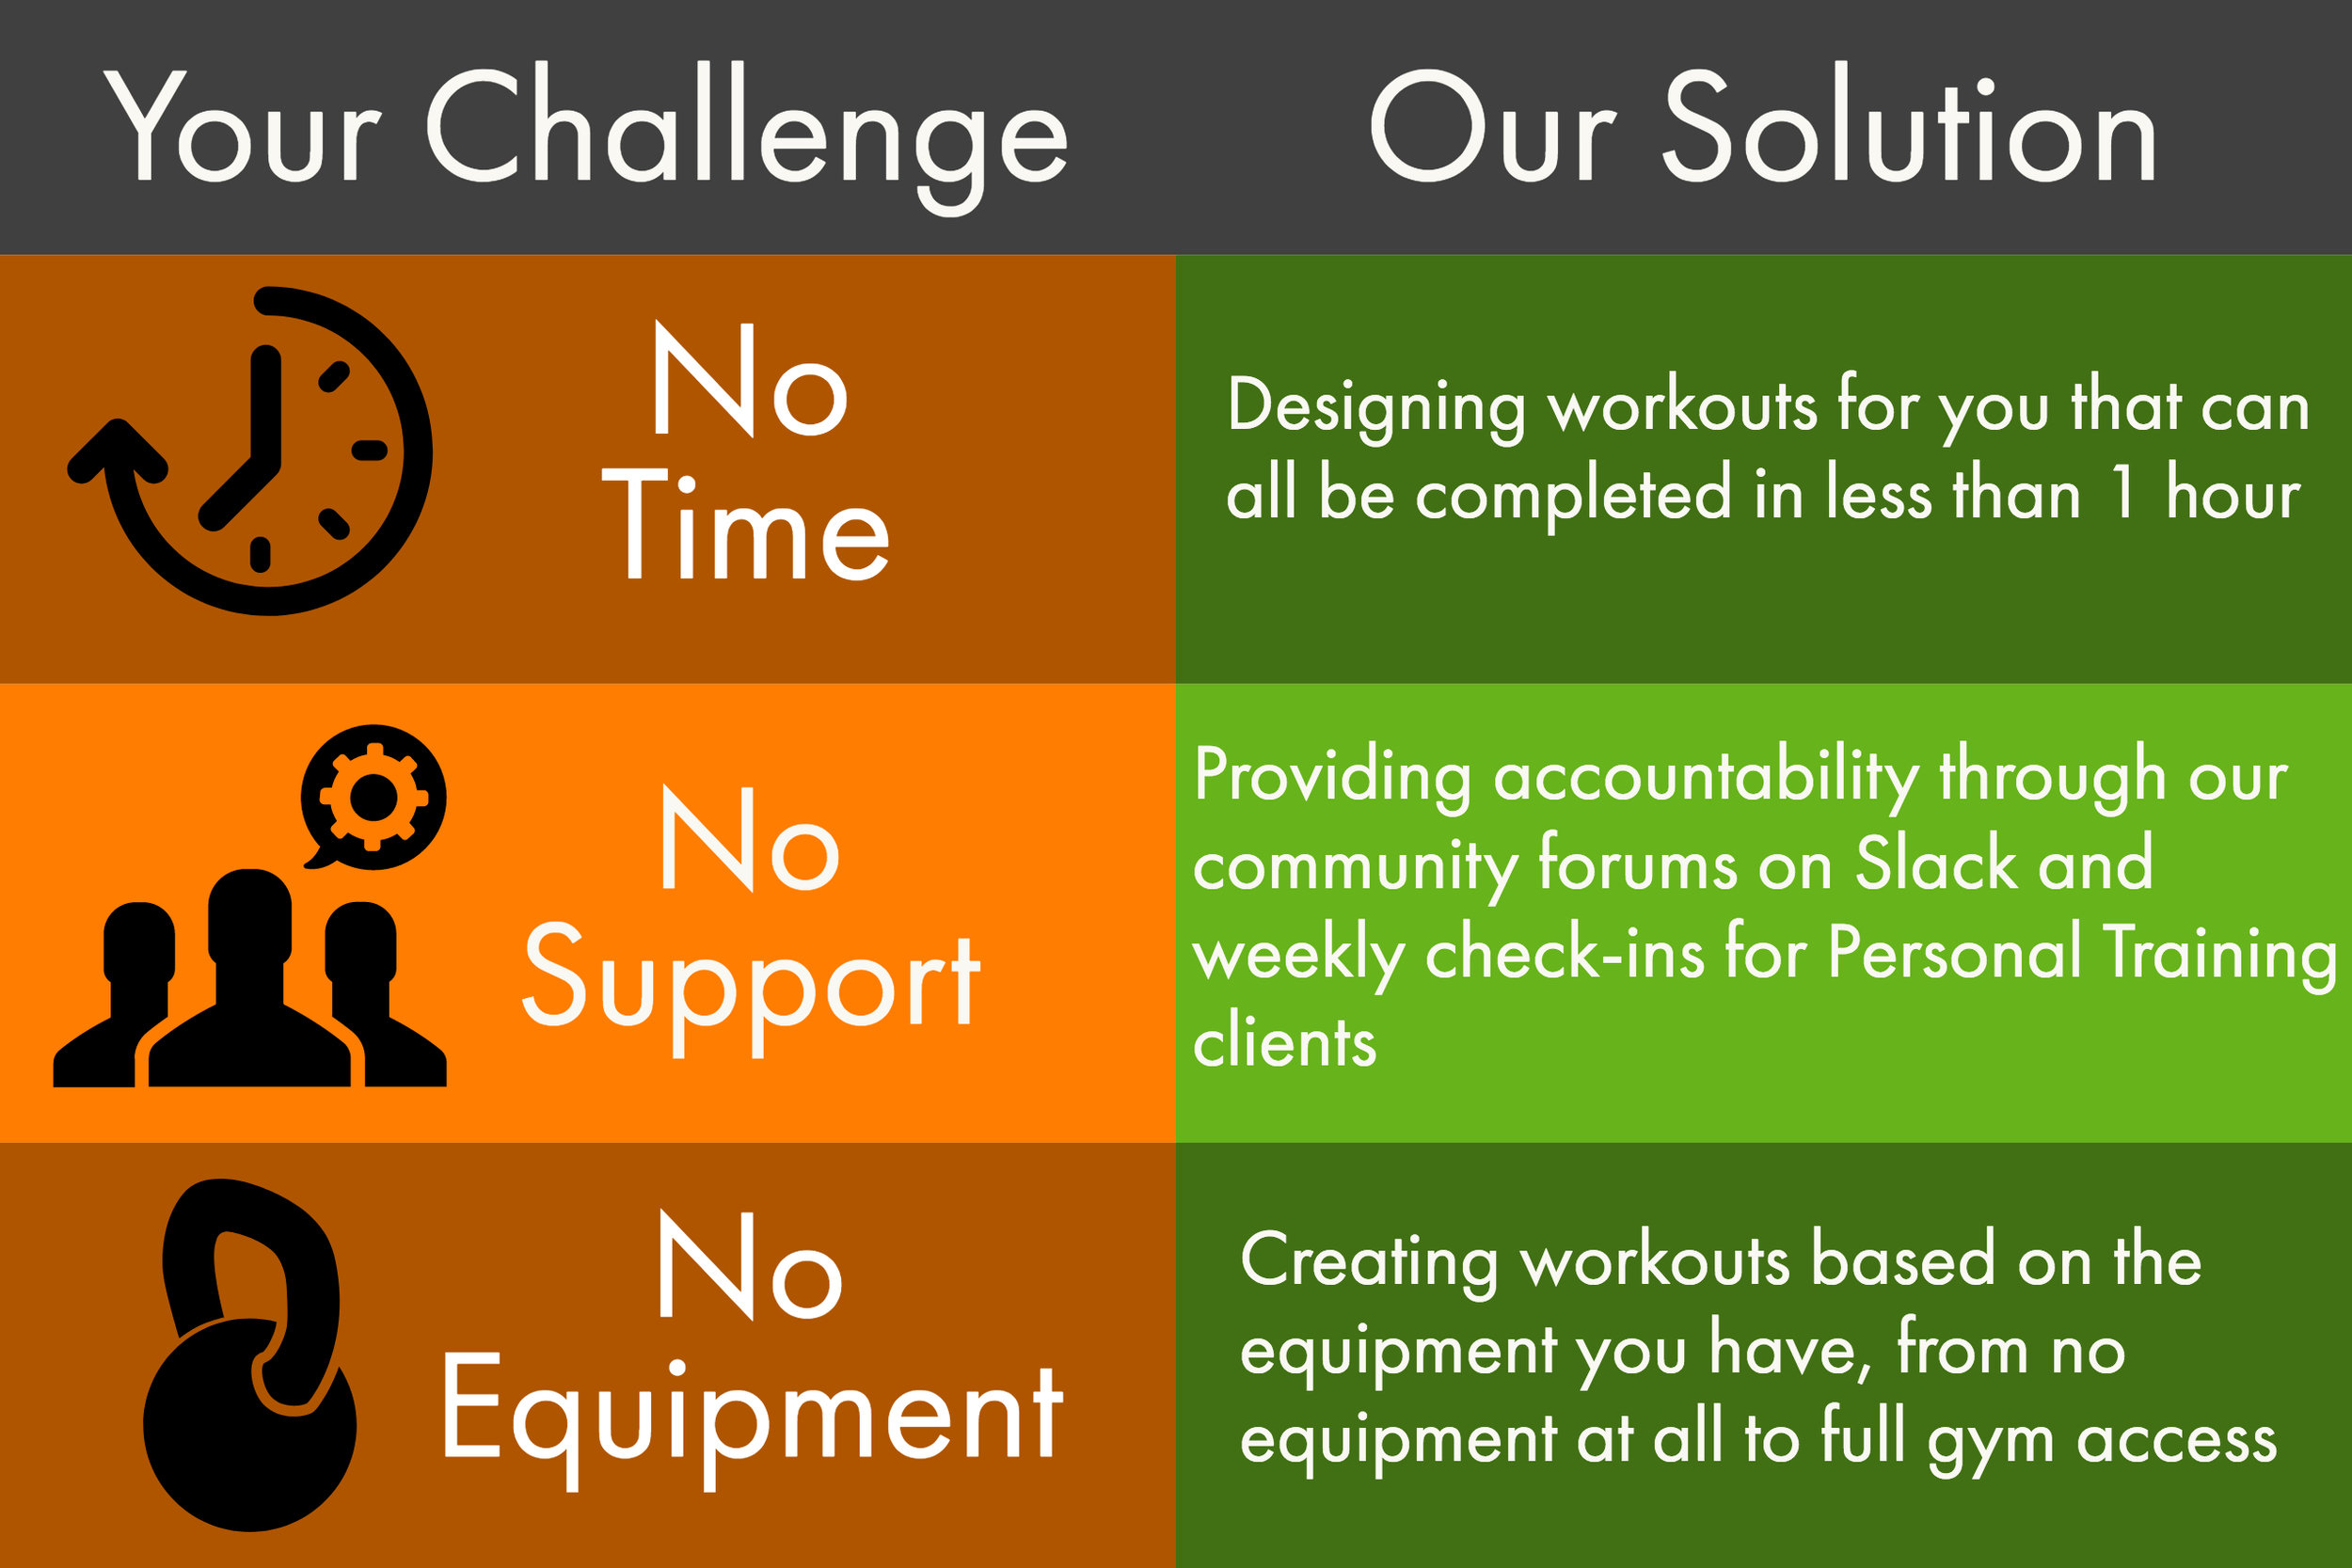 We understand your challenge - We understand the difficulties you face because we've been there. Our programs are designed by first responders, for first responders. Get started with your FREE 28-Day Challenge today!